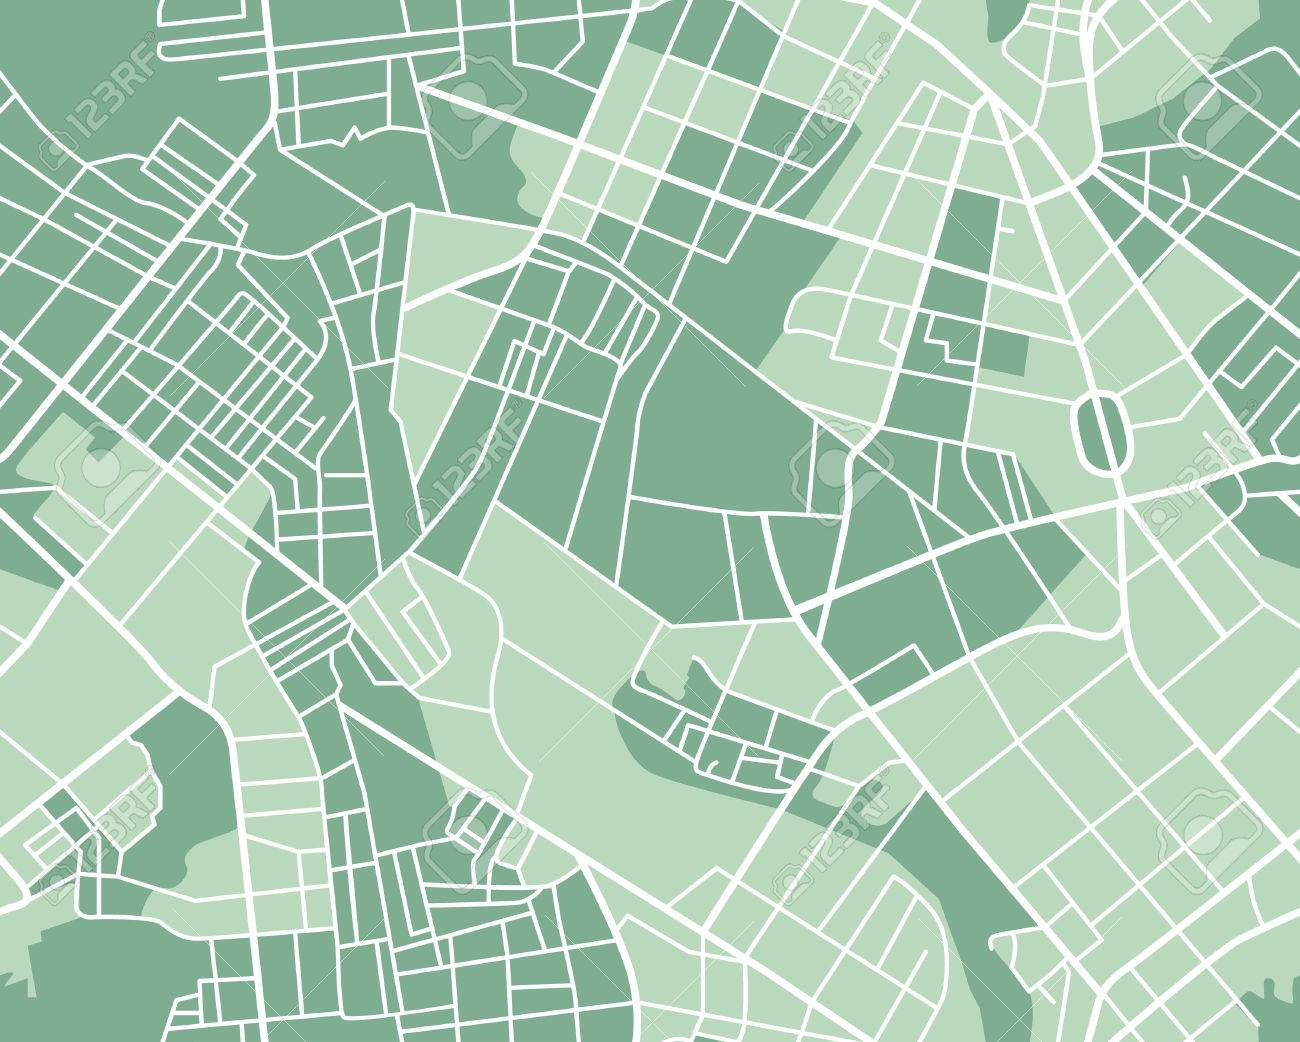 Editable vector street map of town as seamless pattern. Vector illustration. - 40548994